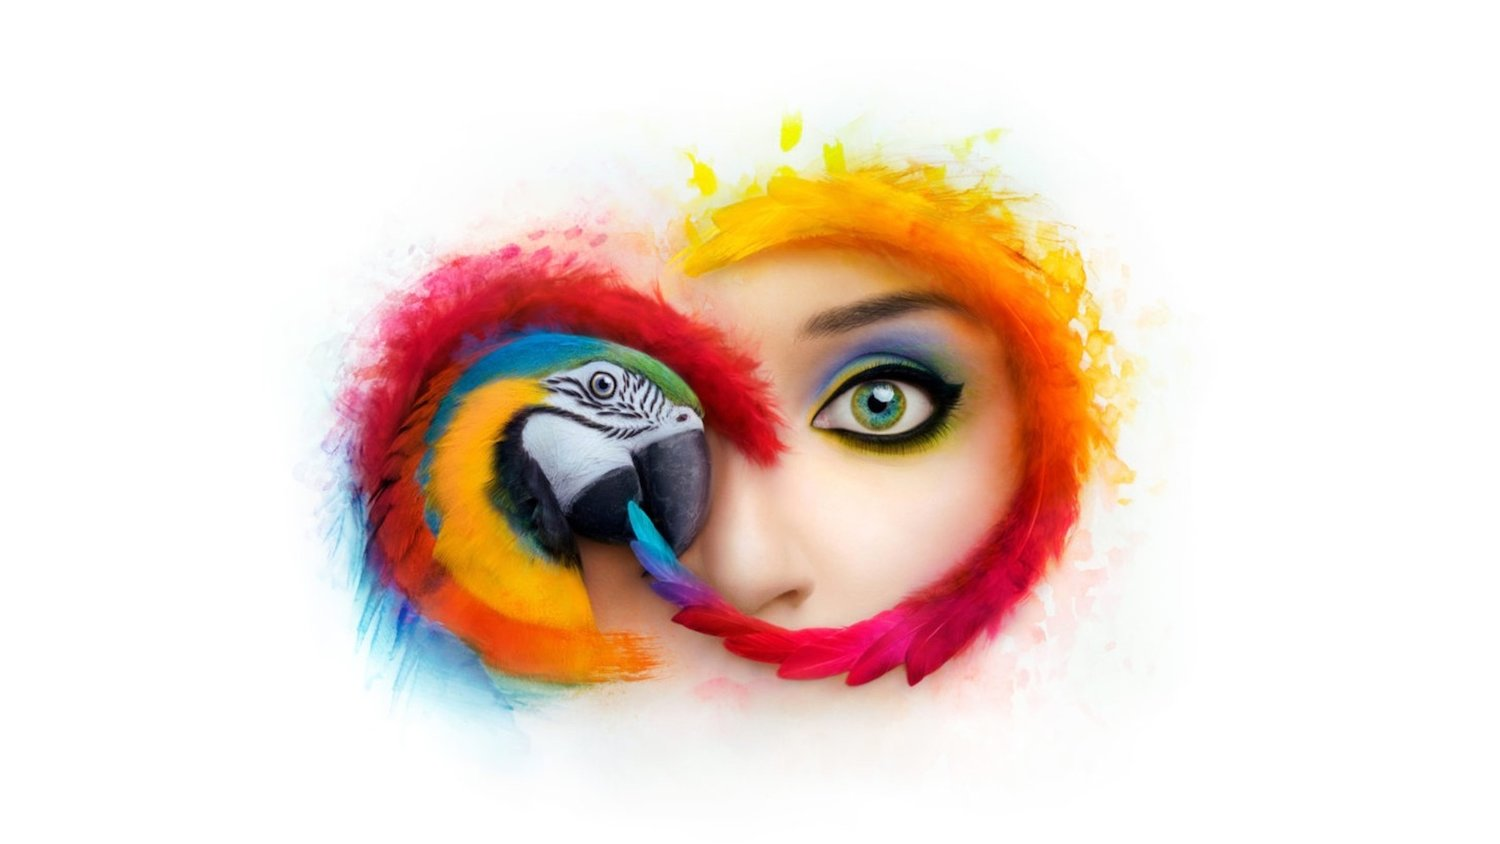 Adobe Says Goodbye to Old Versions of Creative Cloud Desktop Apps